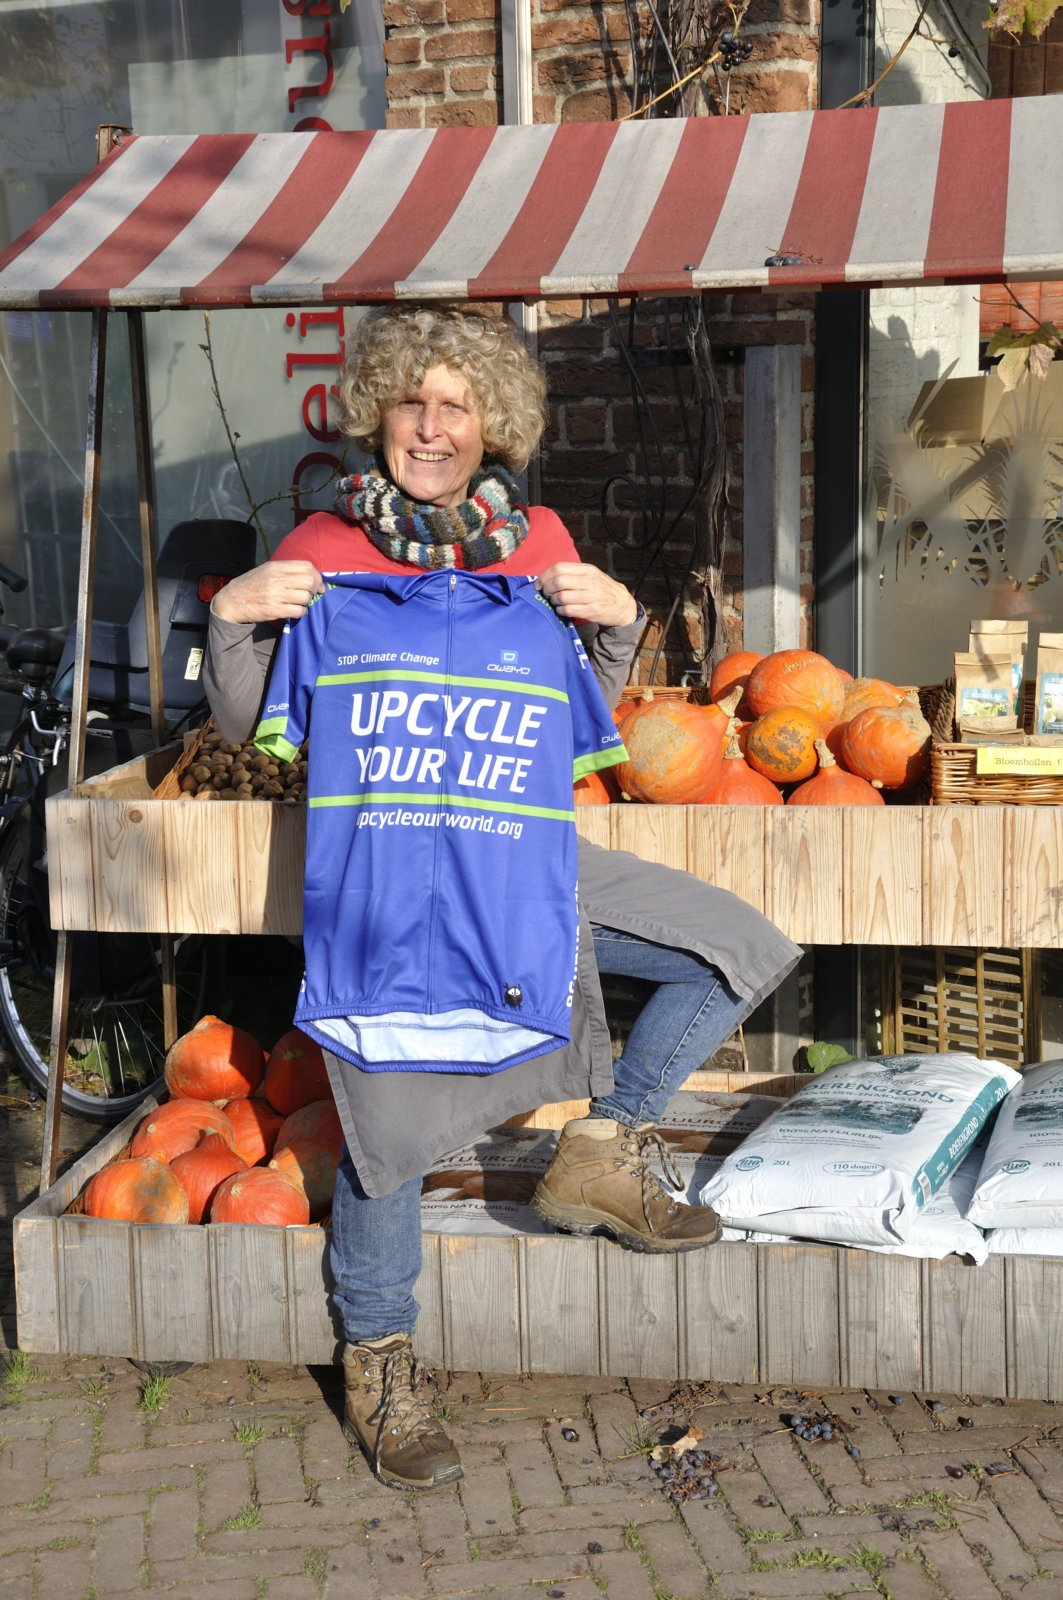 Ambassadeur Gesina Toont Het Upcycle Your Life Wielershirt